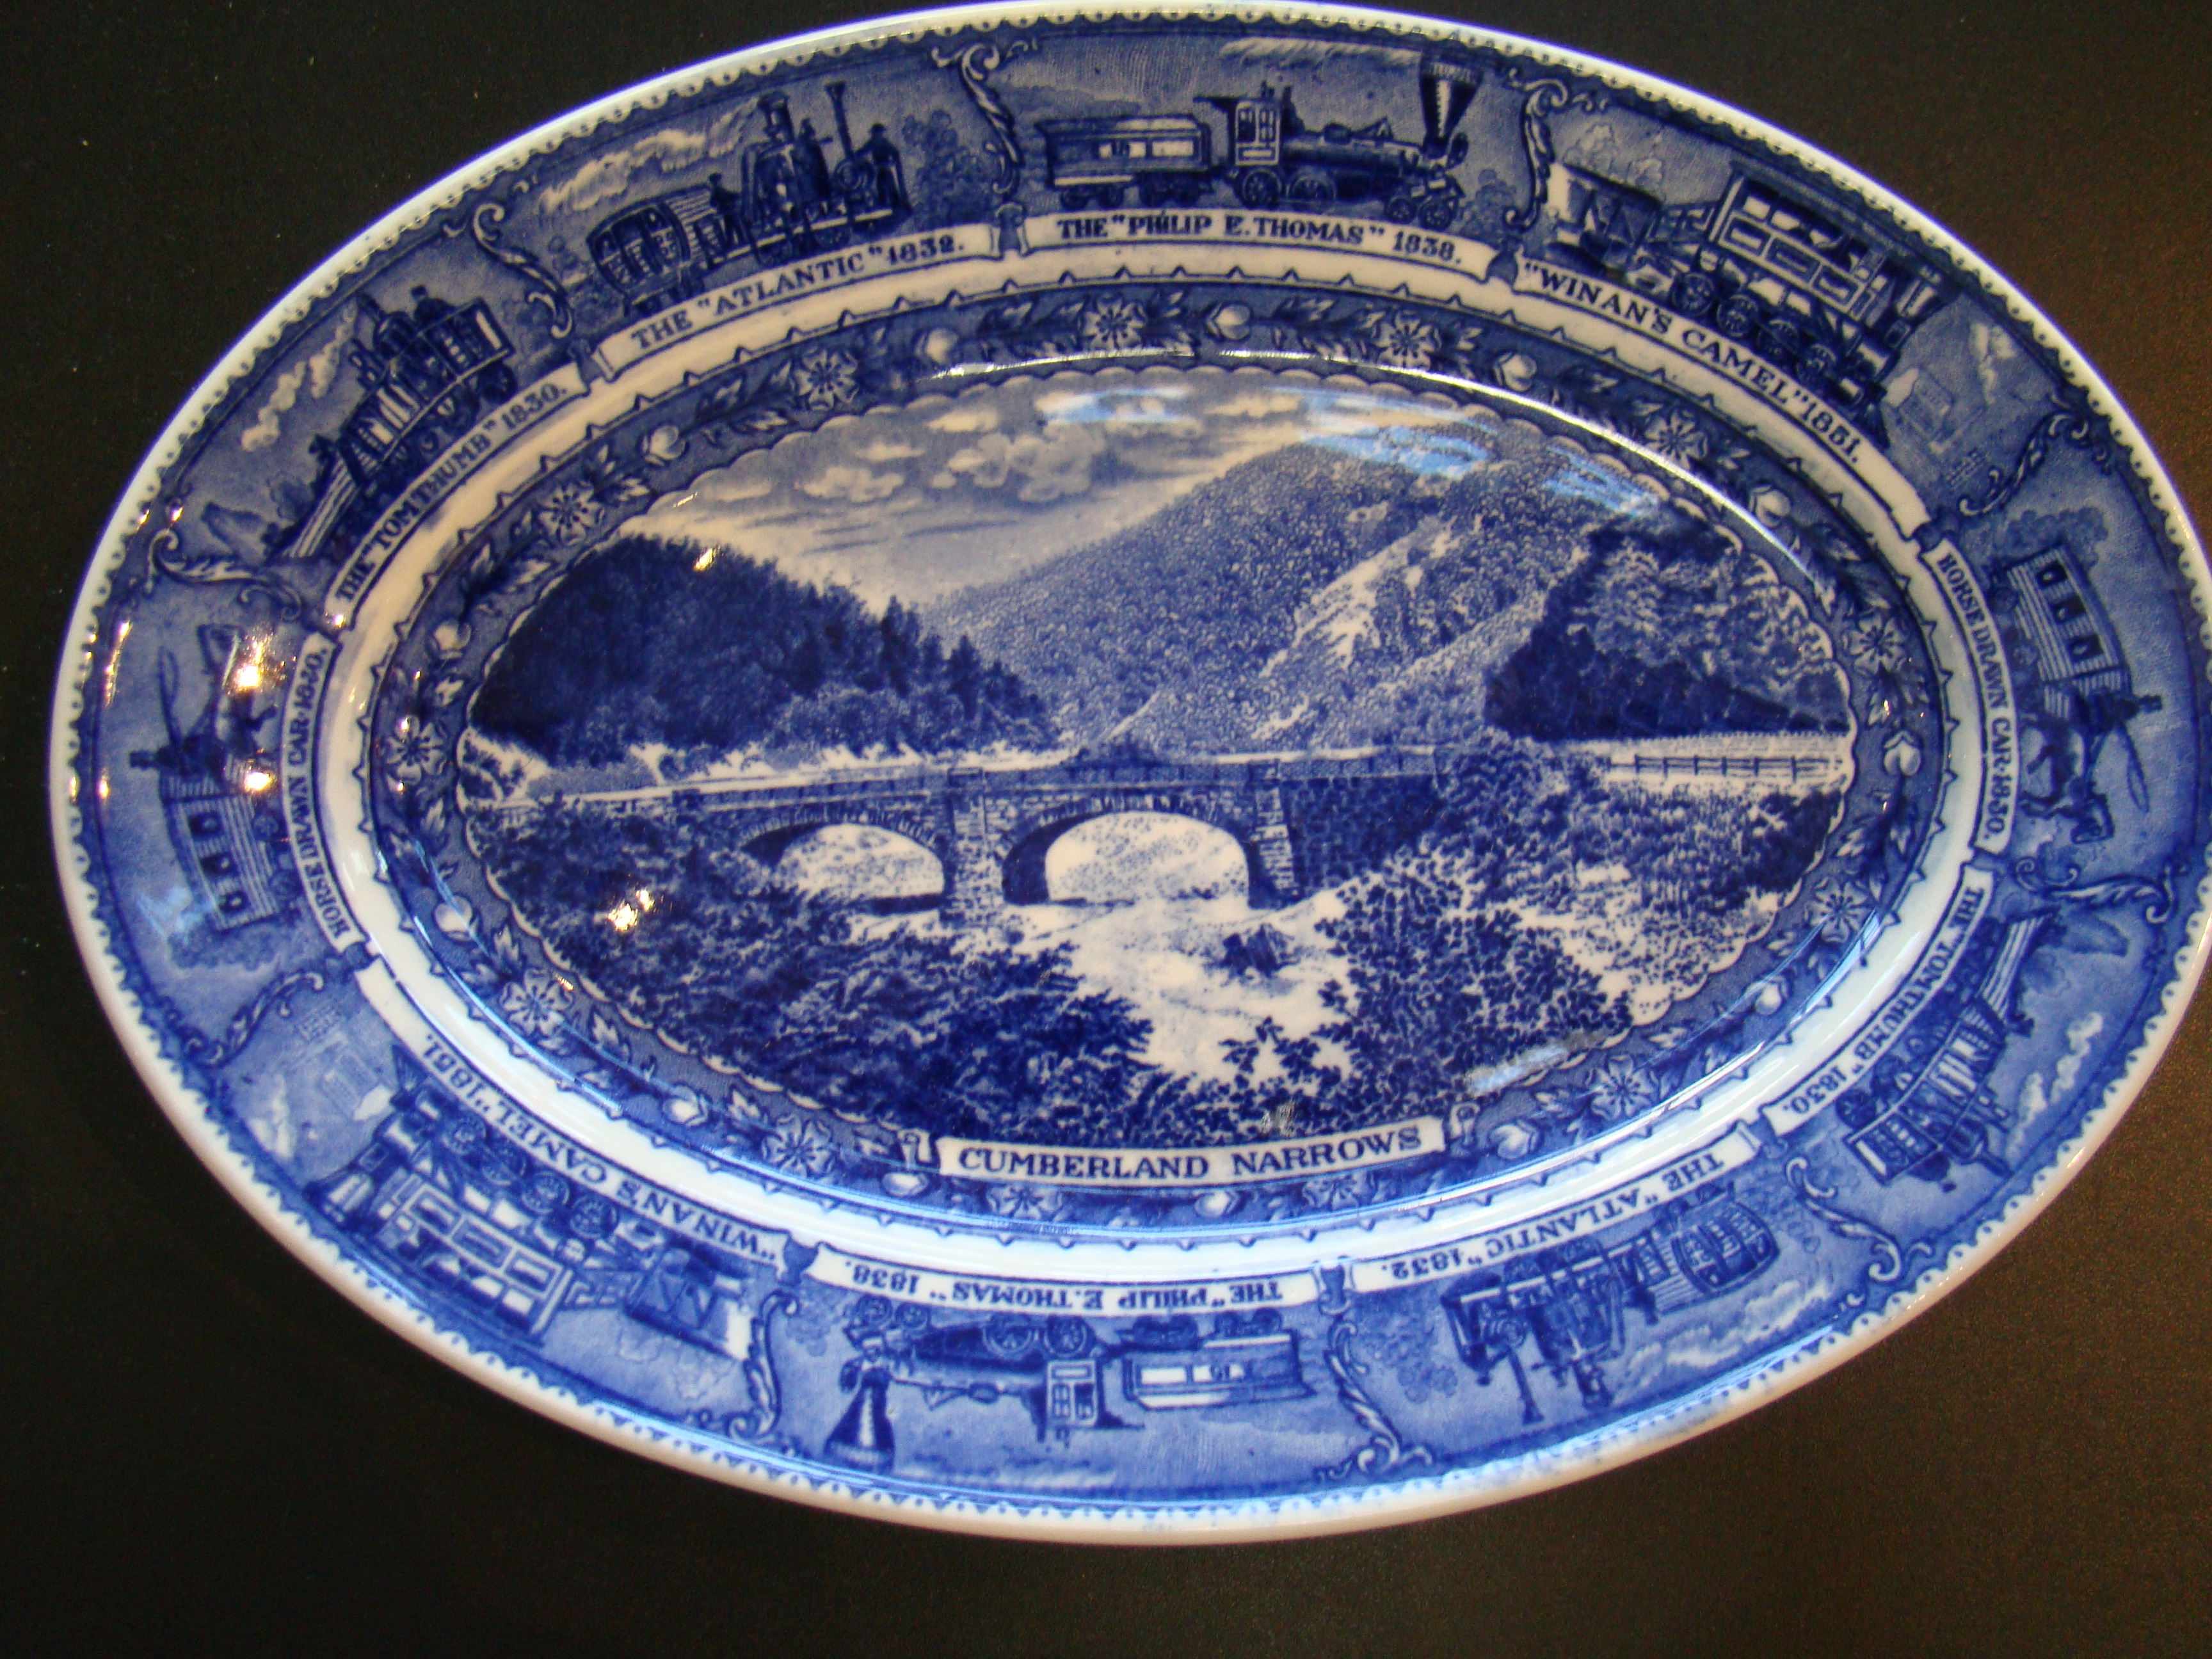 click to view detailed description of A fine and rare oval serving dish from the Baltimore & Ohio Railroad circa 1900 made by Lambertons China.